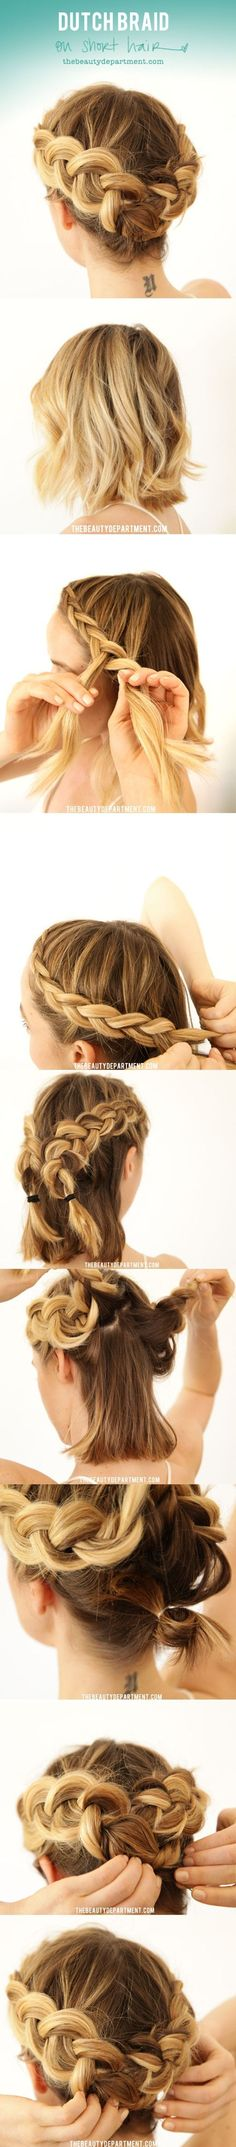 Dutch Braids - I'll show you how we did dutch braid on short hair, you could really see detail in the larger individual photos on my normal tutorial.